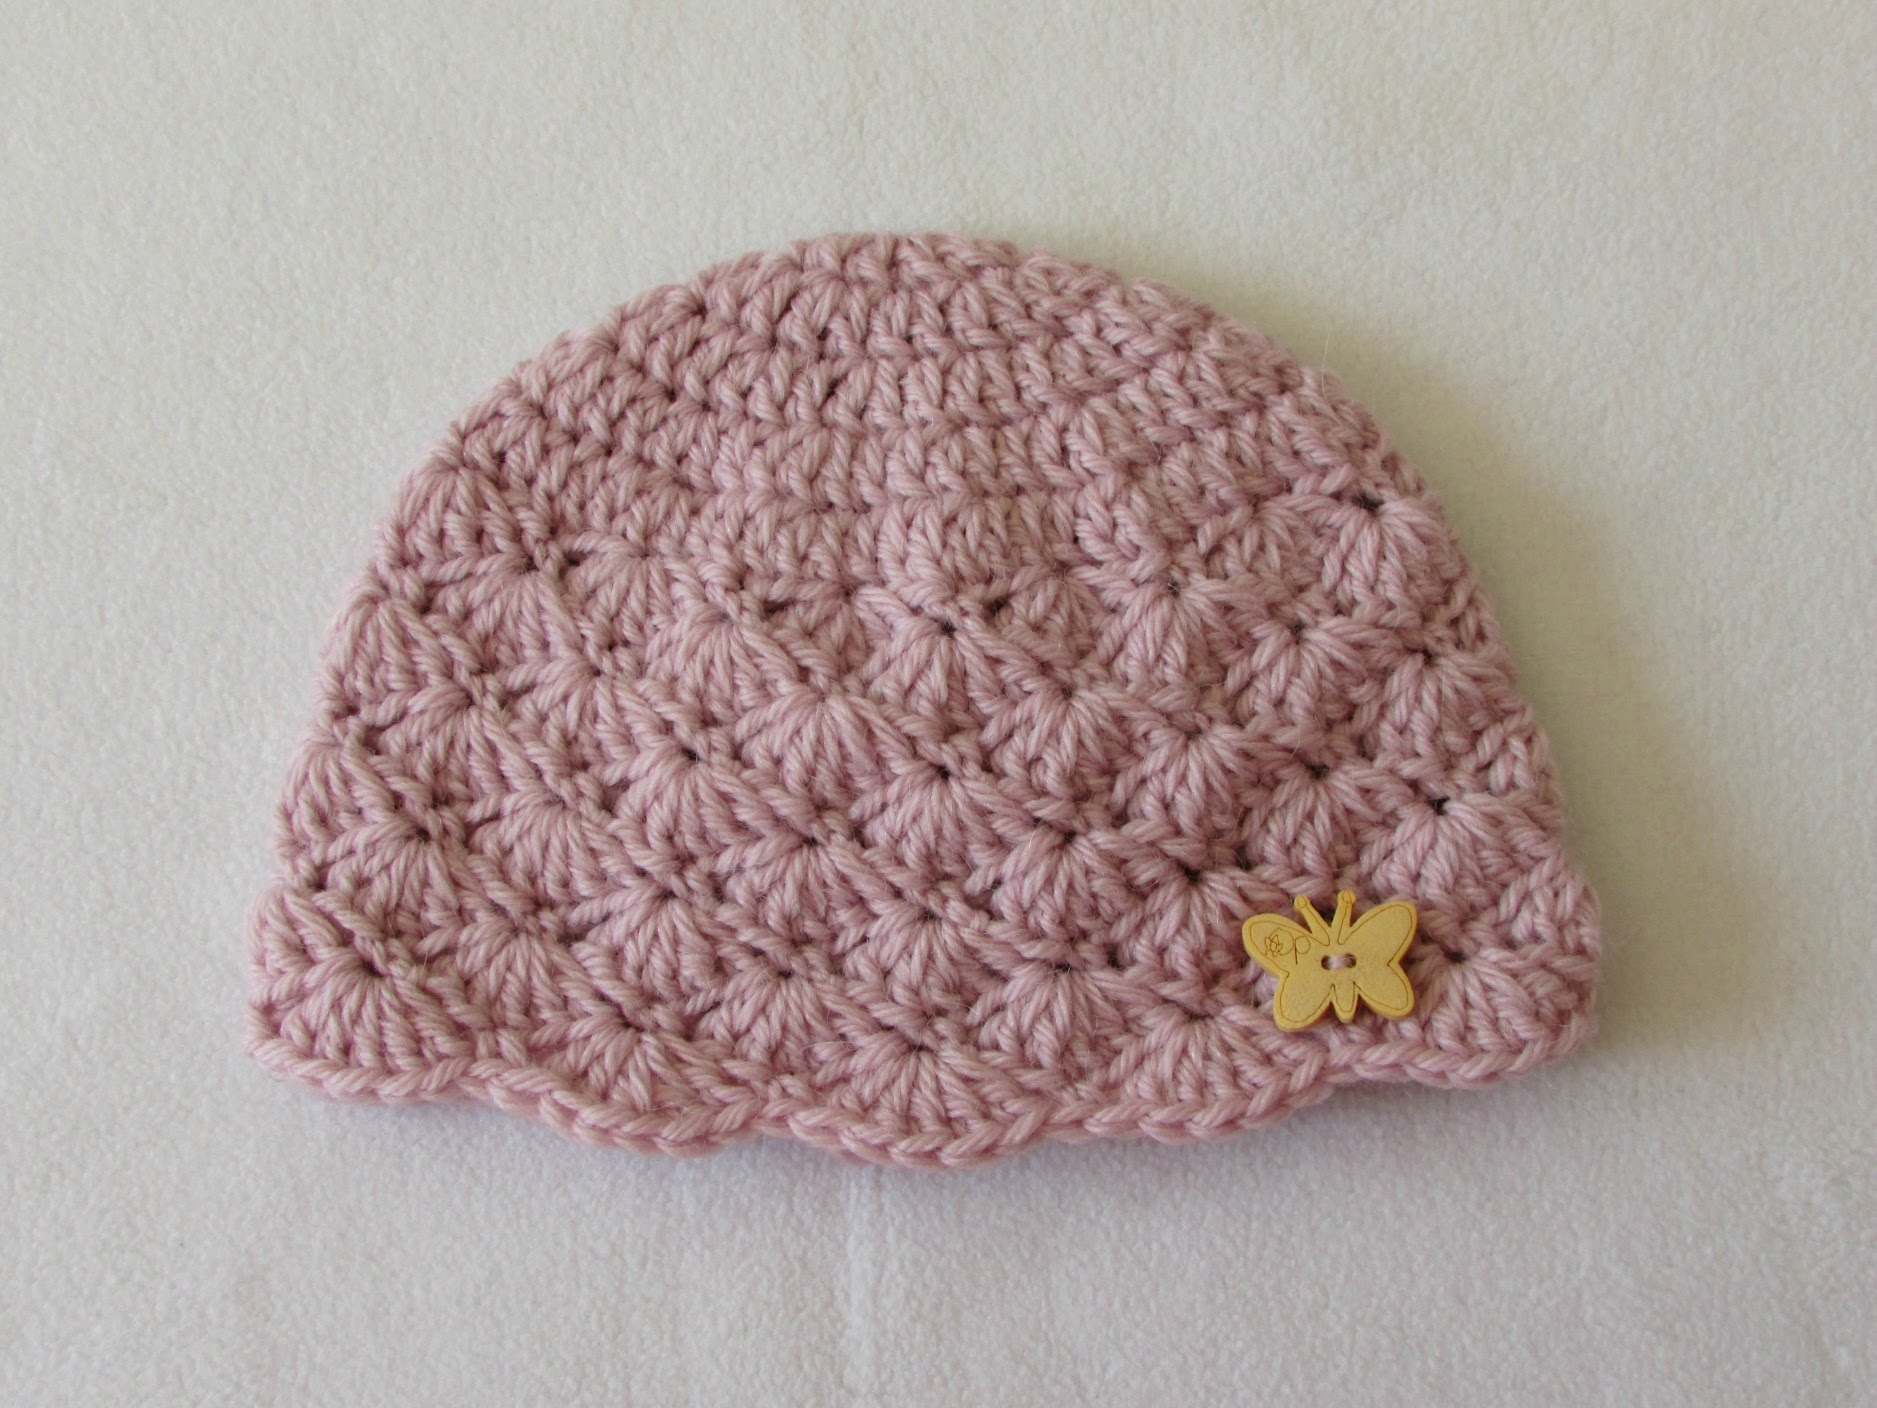 crochet baby hats how to crochet a cute baby girlu0027s hat for beginners - youtube intzxkf